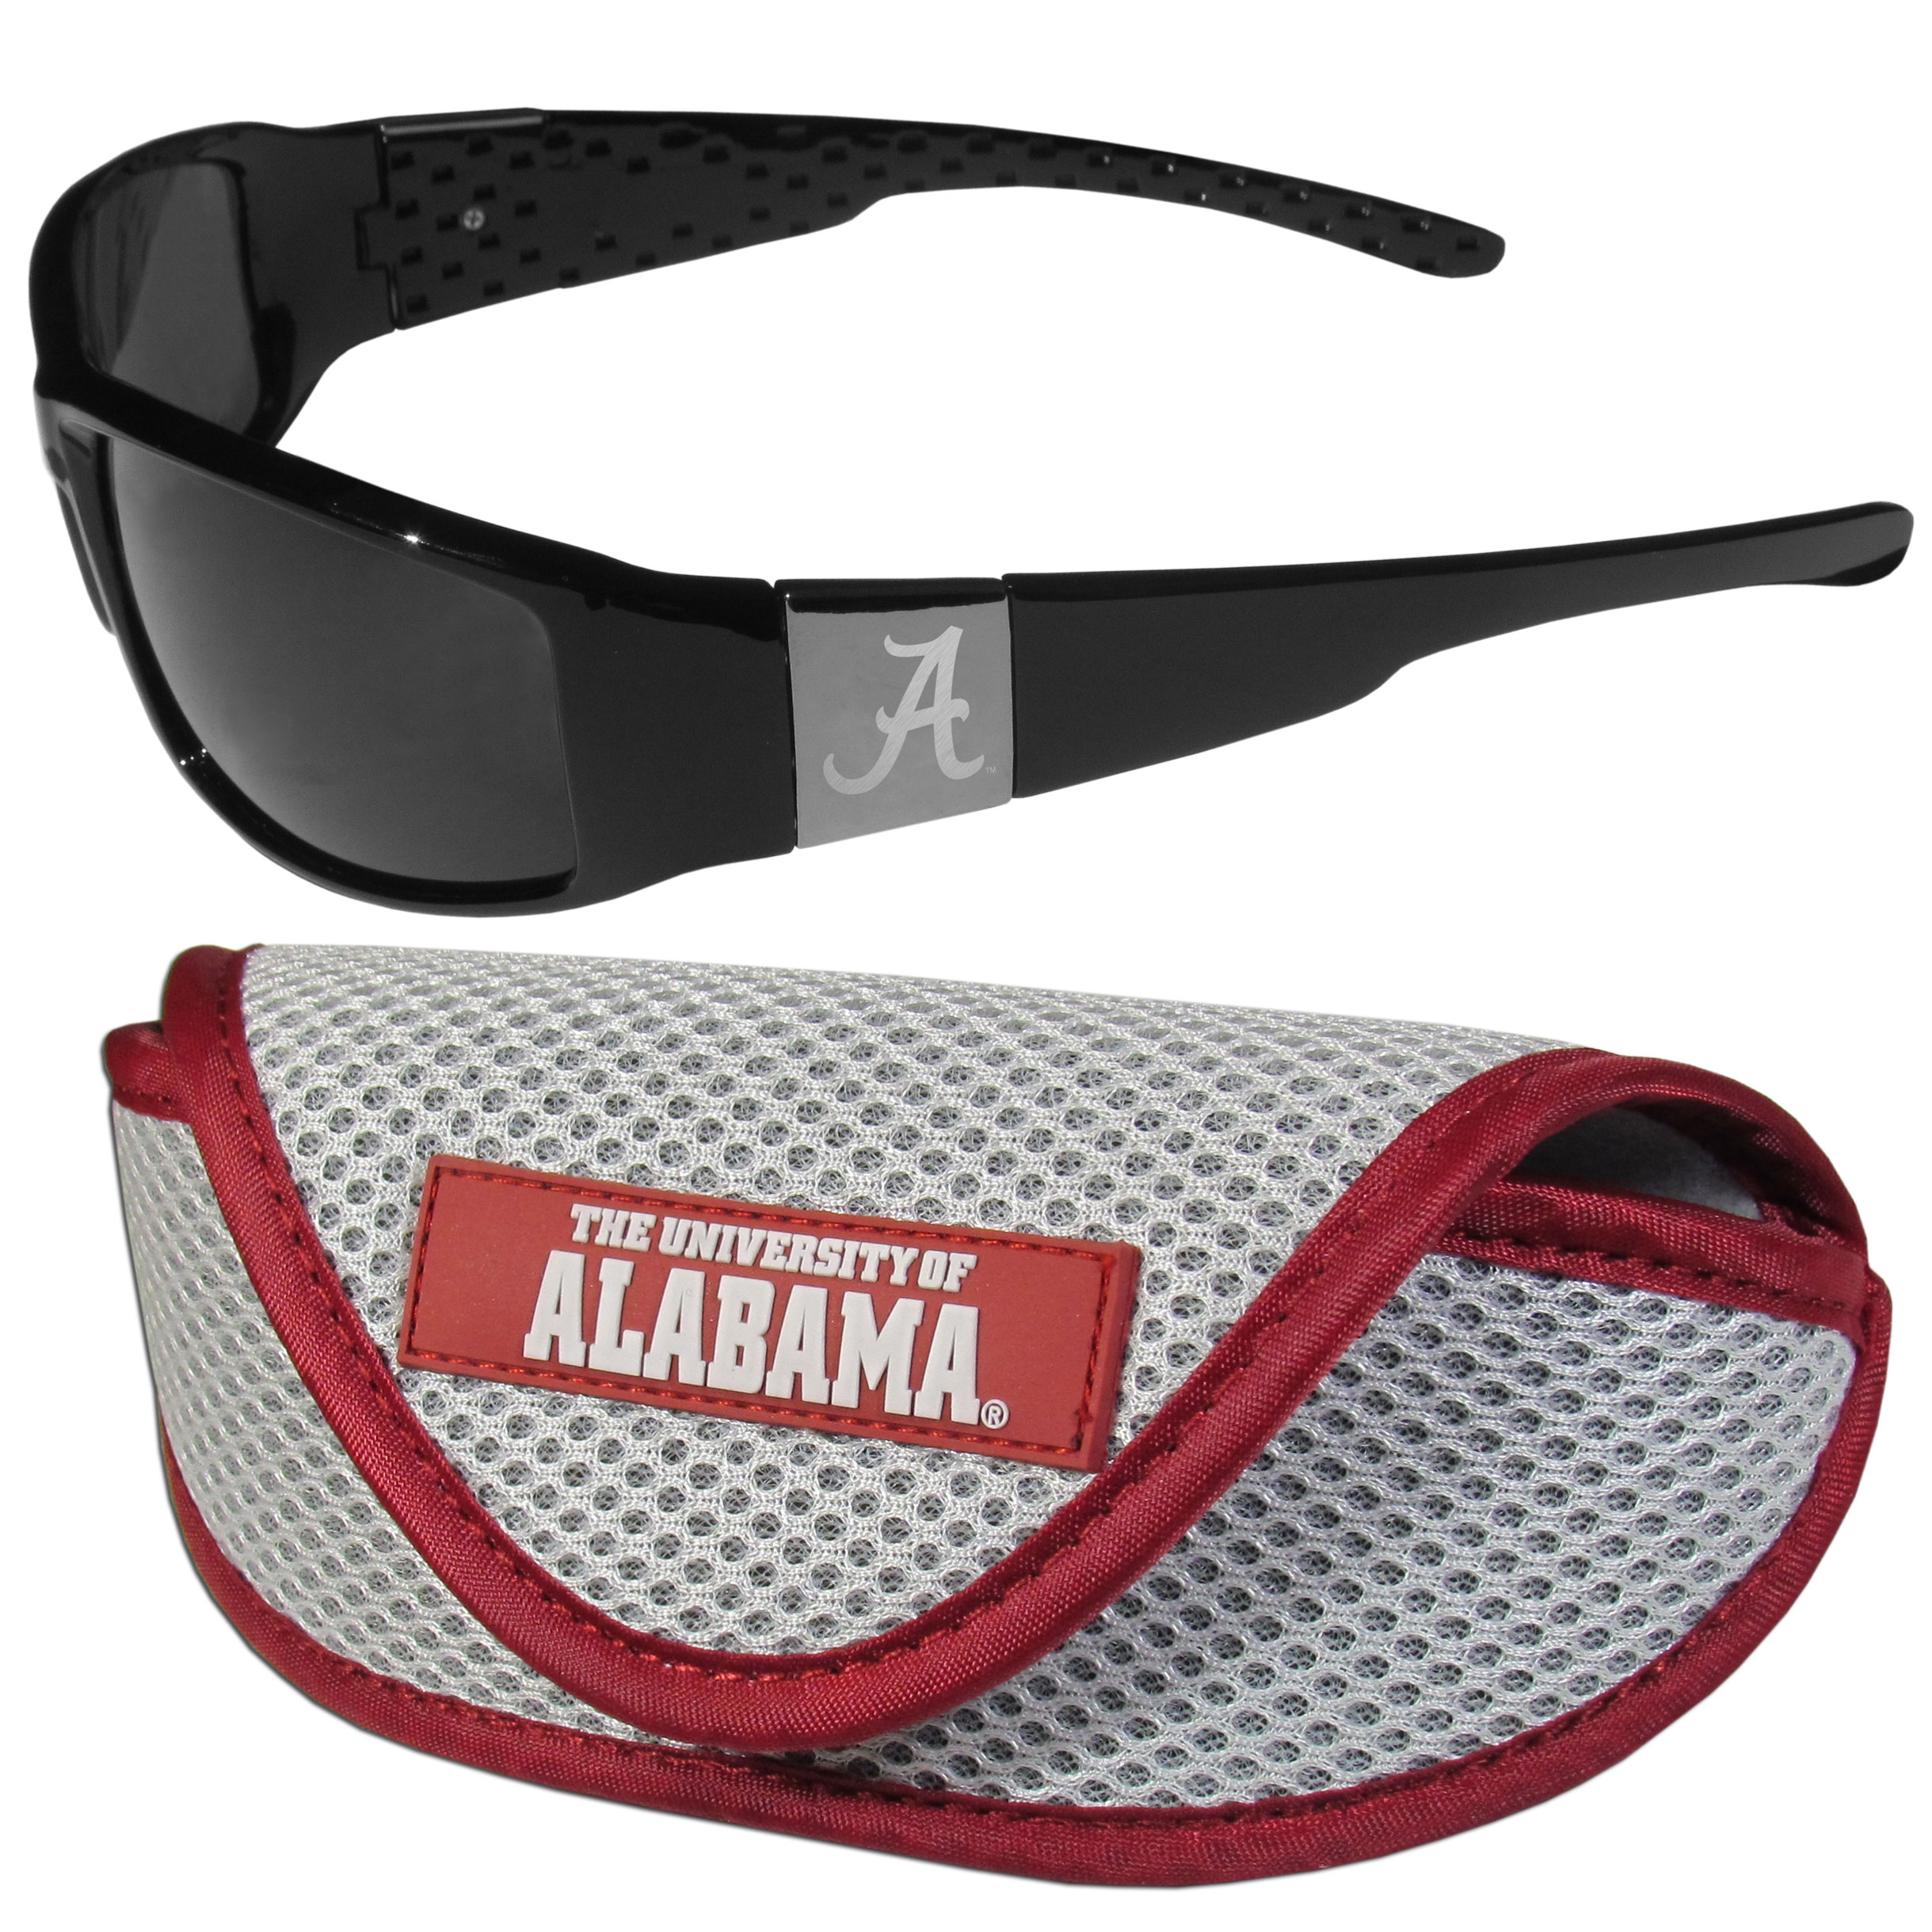 Alabama Crimson Tide Chrome Wrap Sunglasses and Sport Carrying Case - These designer inspired frames have a sleek look in all black with high-polish chrome Alabama Crimson Tide shields on each arm with an etched logo. The shades are perfect any outdoor activity like; golfing, driving, hiking, fishing or cheering on the team at a tailgating event or an at home game day BBQ with a lens rating of 100% UVA/UVB for maximum UV protection. The high-quality frames are as durable as they are fashionable and with their classic look they are perfect fan accessory that can be worn everyday for every occasion. The shades come with a sport case with colorful logo on the lid and velcro closure to keep your sunglasses safe.